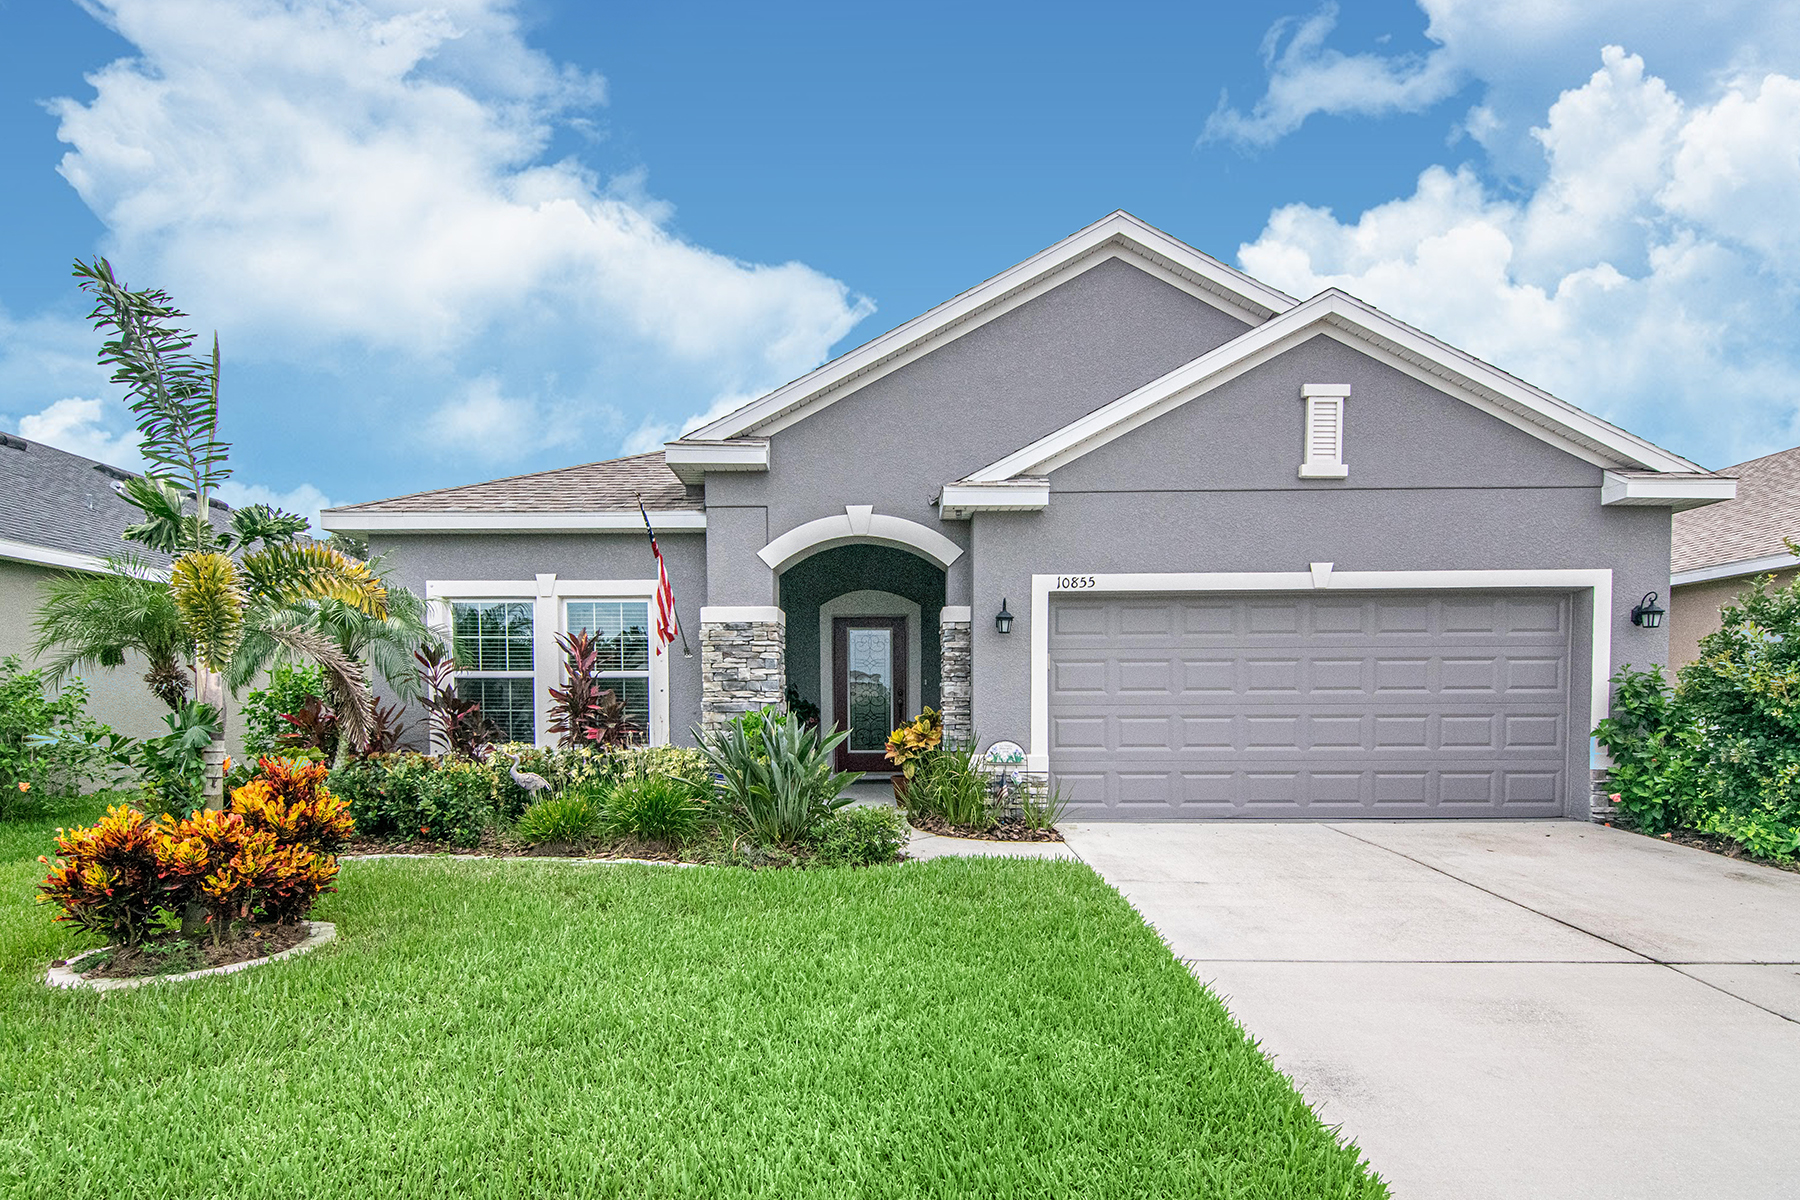 Single Family Homes for Active at PARRISH 10855 79th St E Parrish, Florida 34219 United States